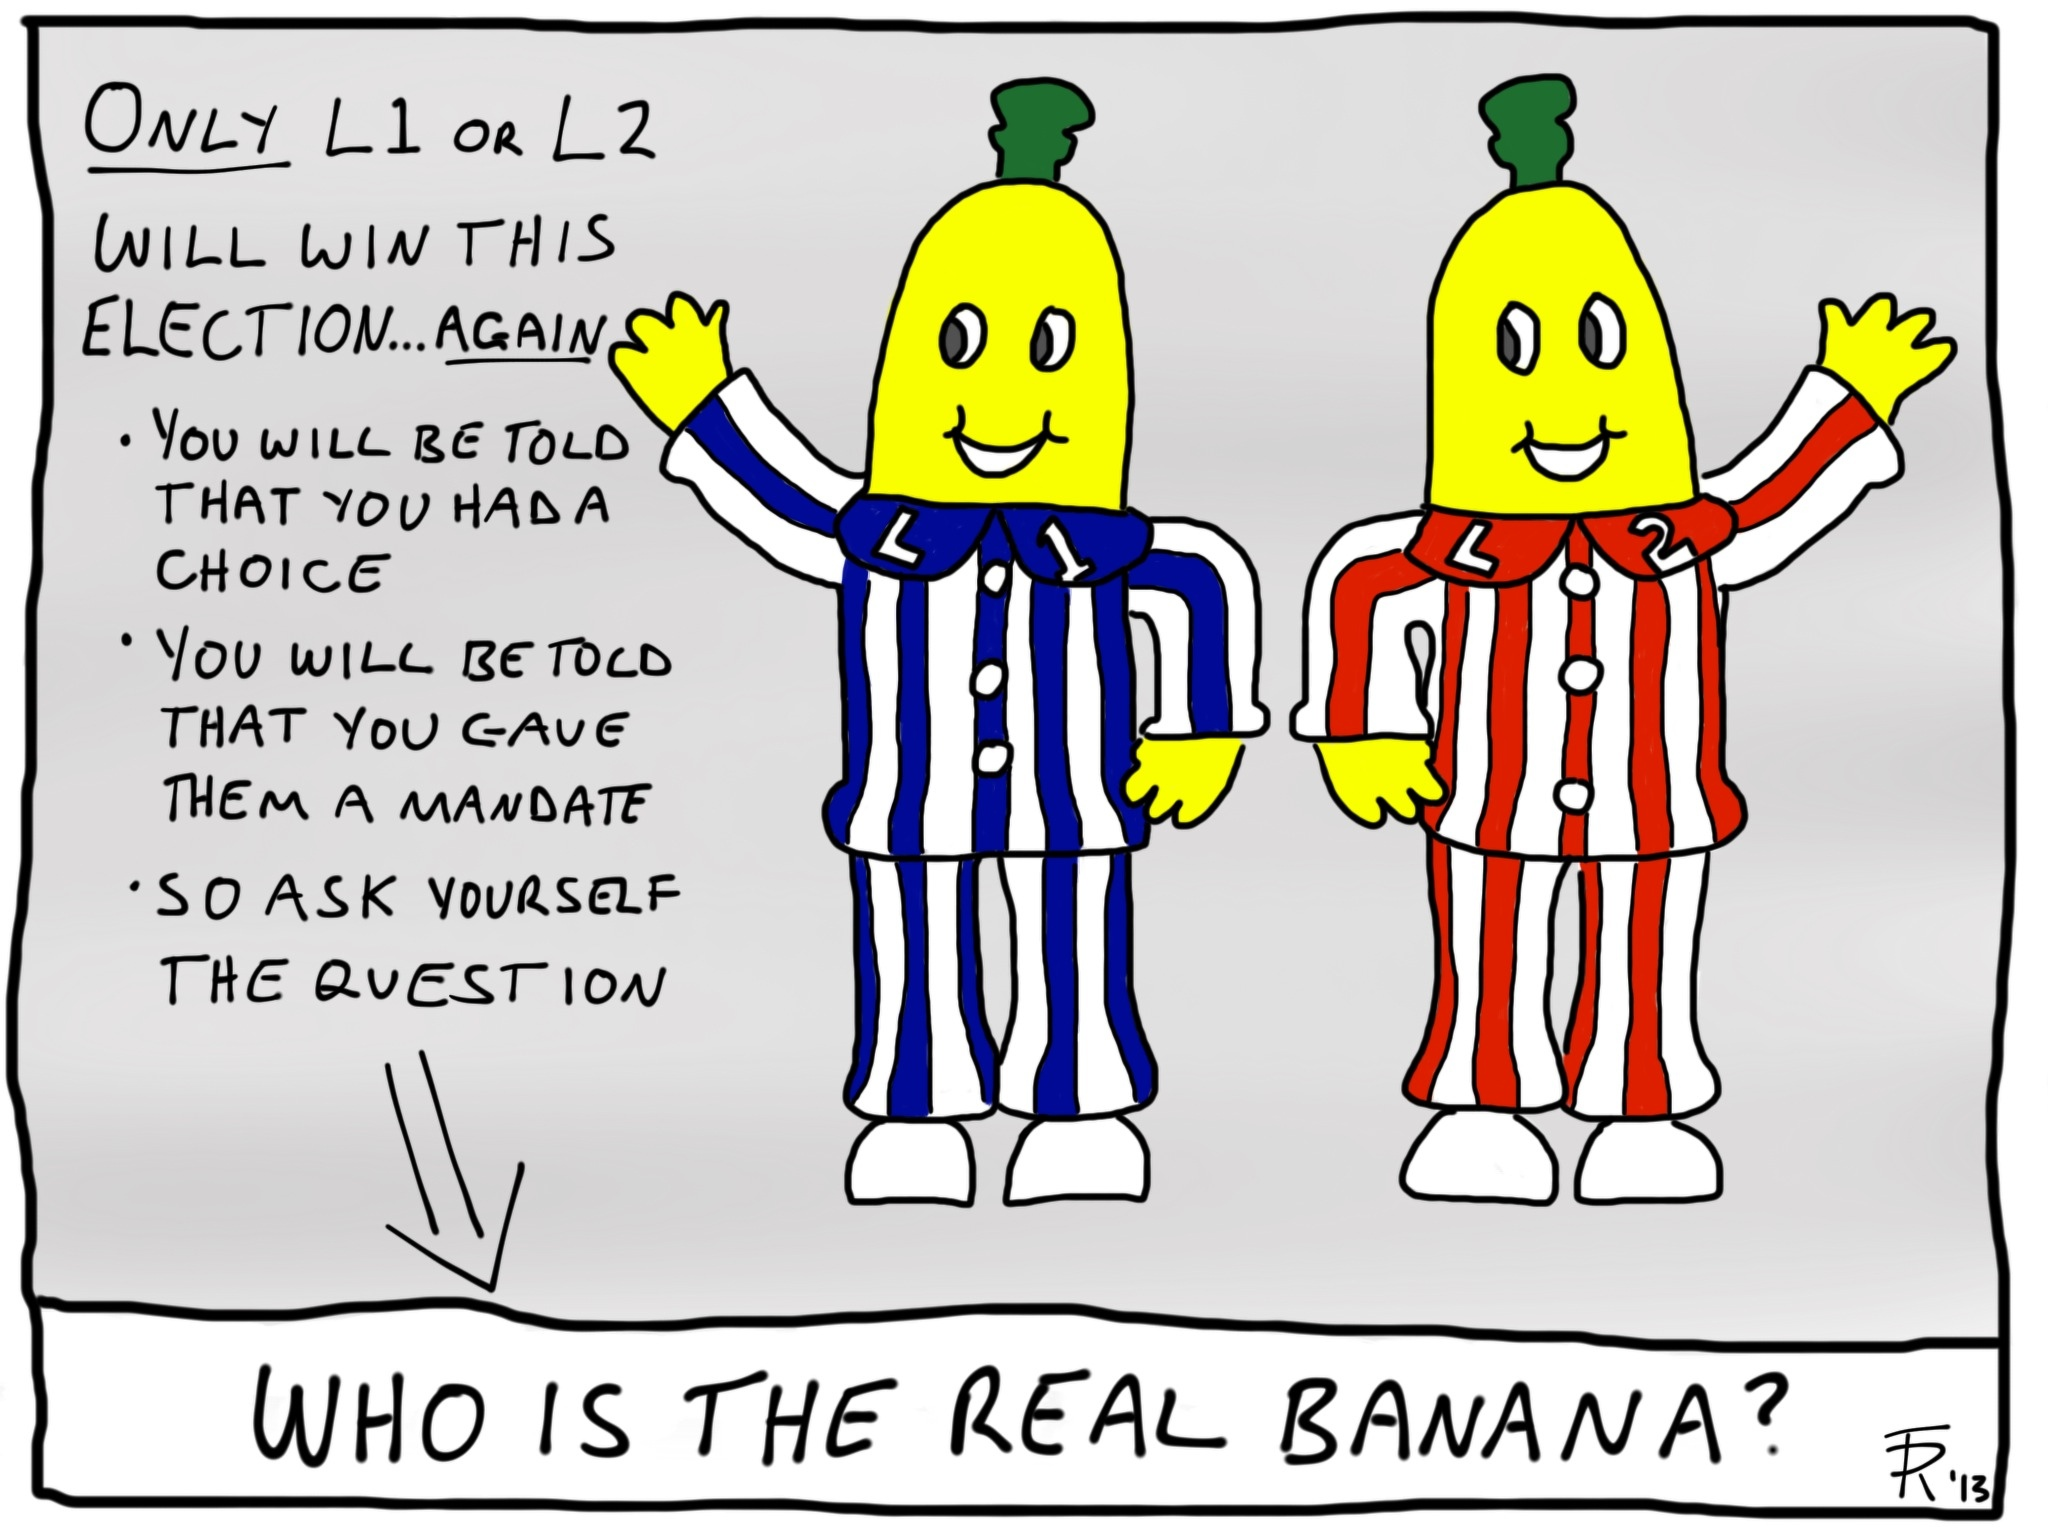 Who is the real banana.JPG